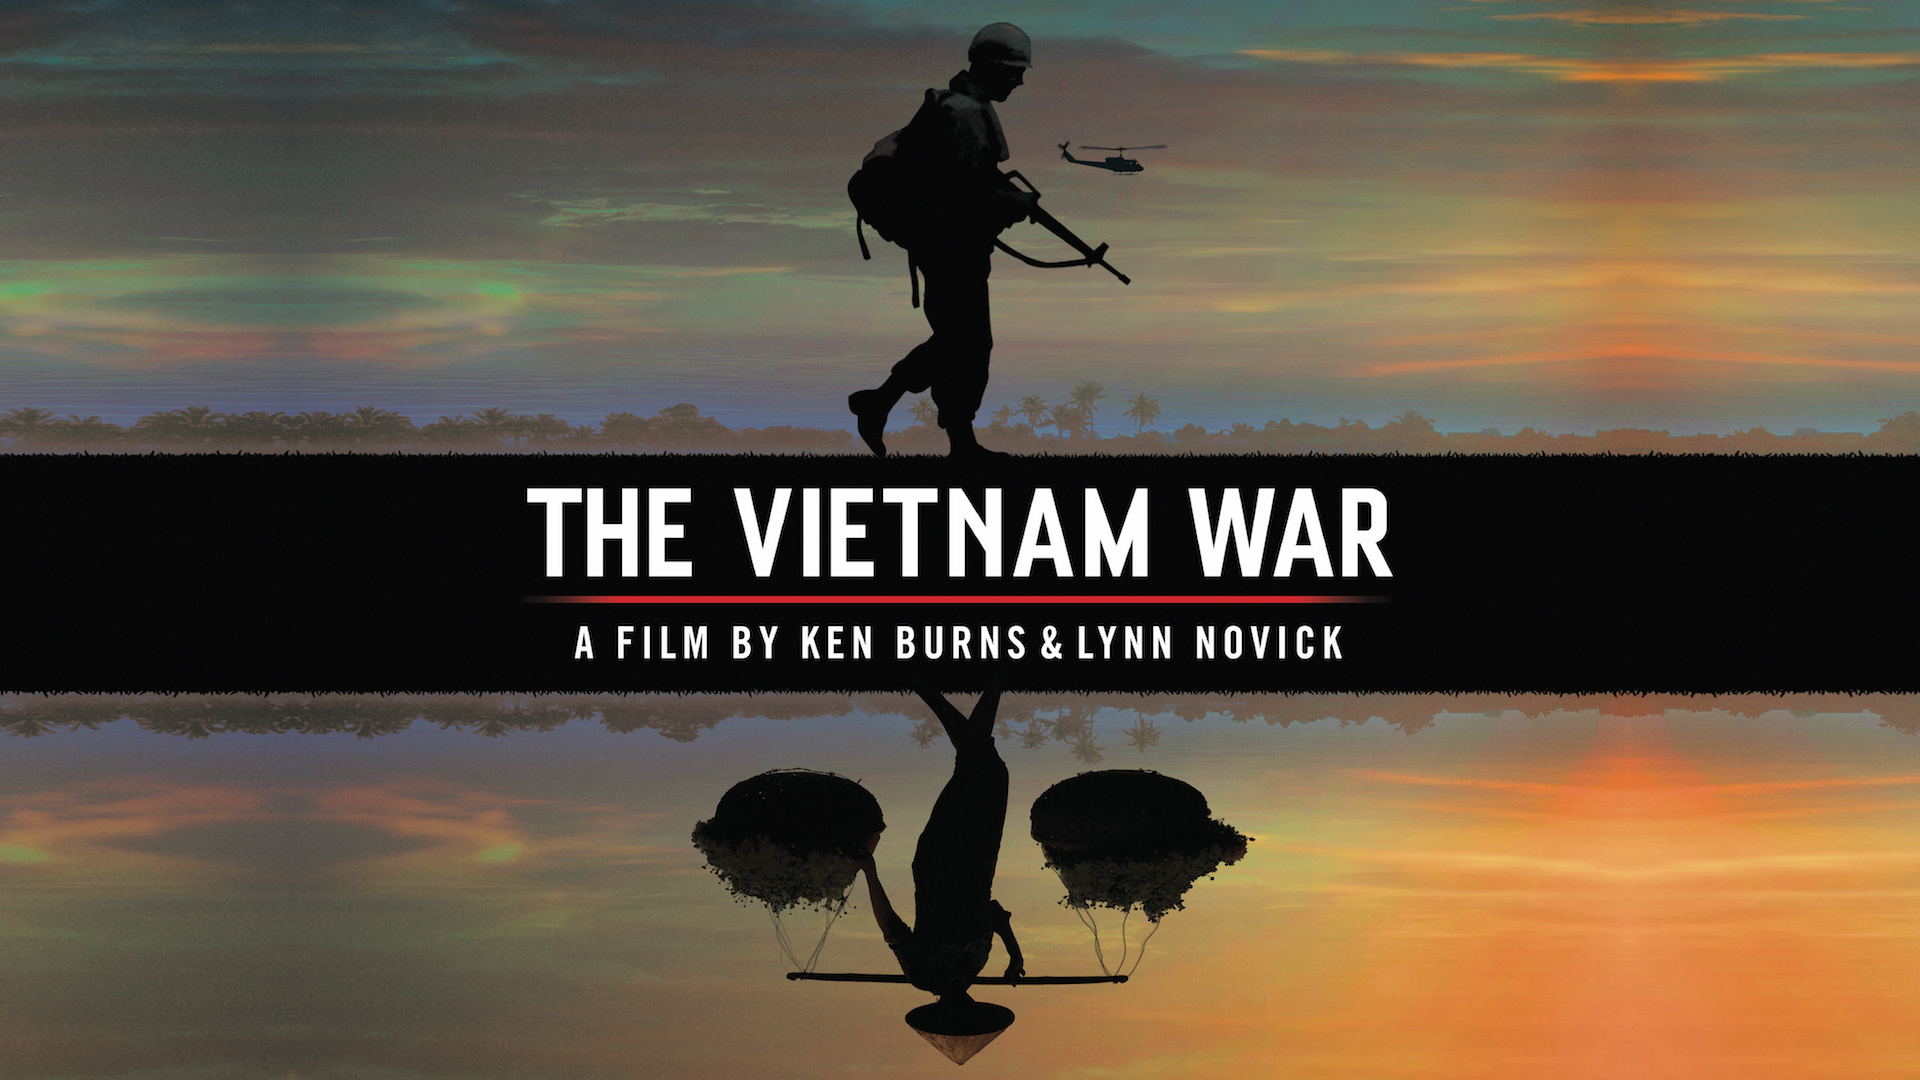 The Vietnam War: A Film by Ken Burns and Lynn Novick - Click Here to Watch